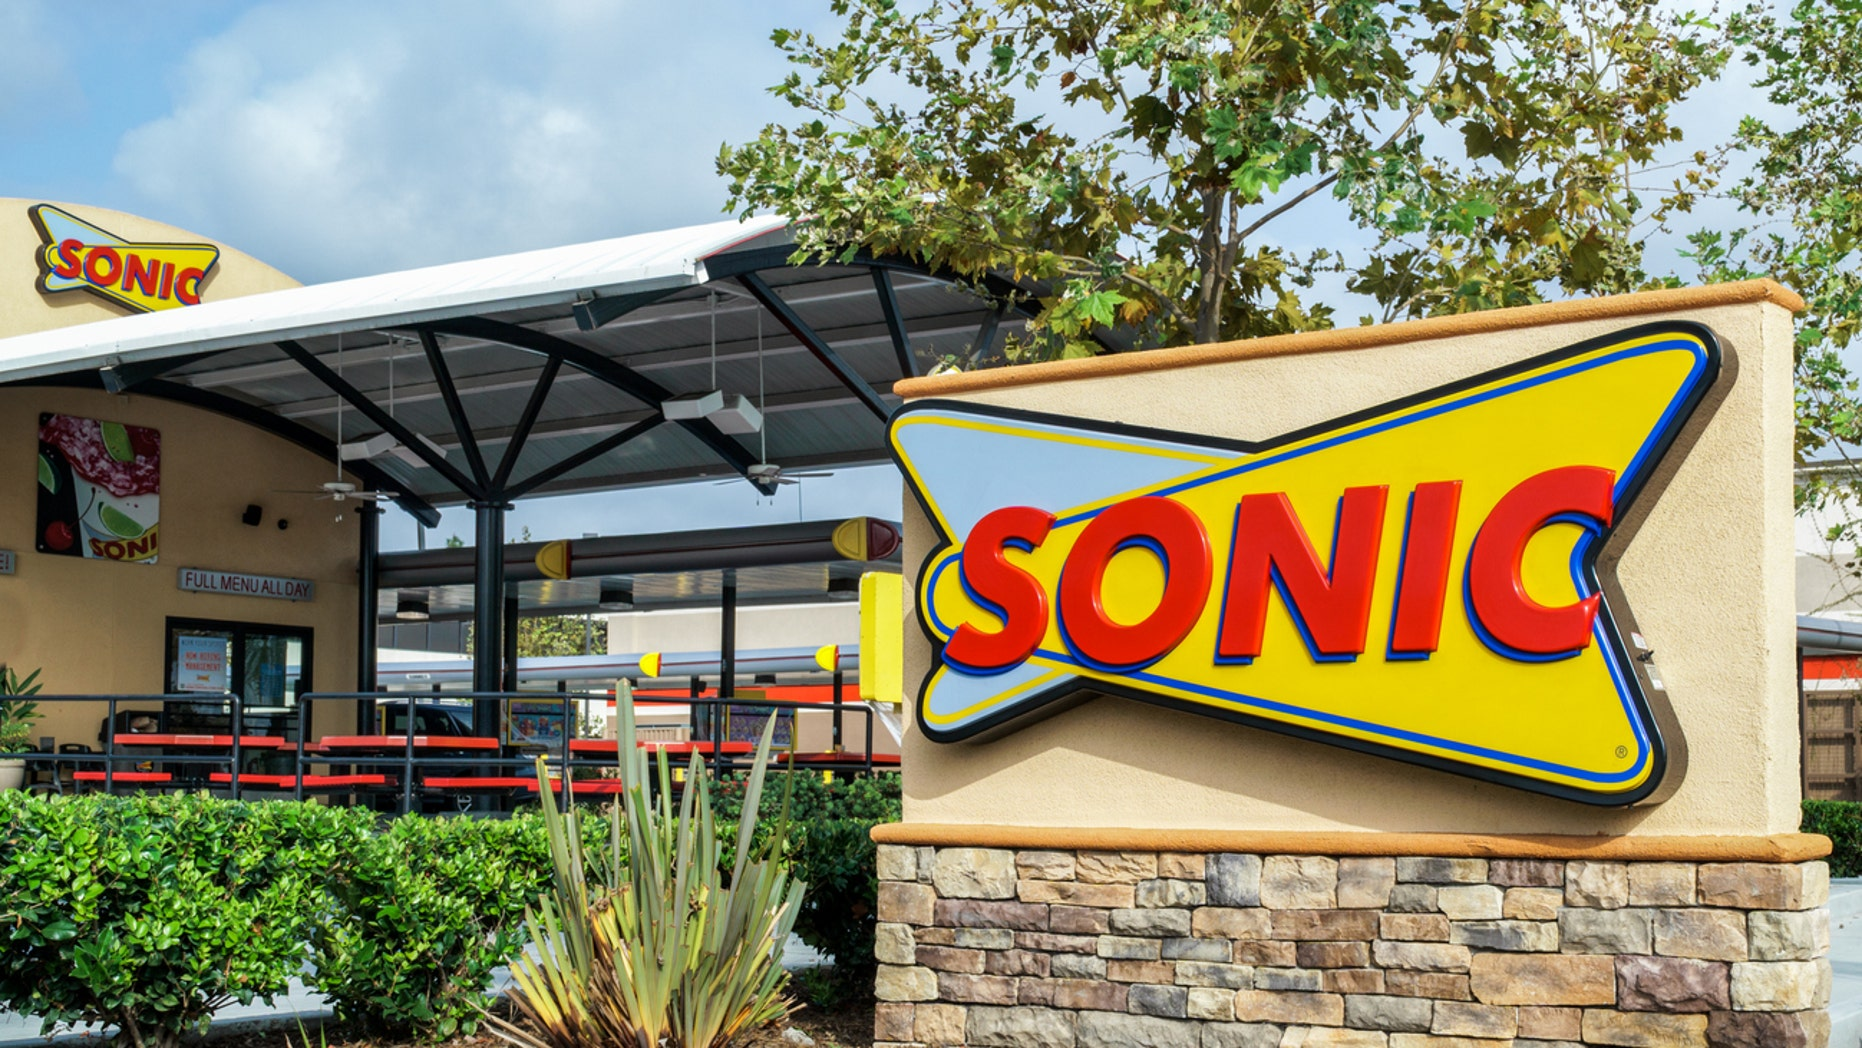 Sonic puts its 'cherished' ice up for auction, gets bids above $300